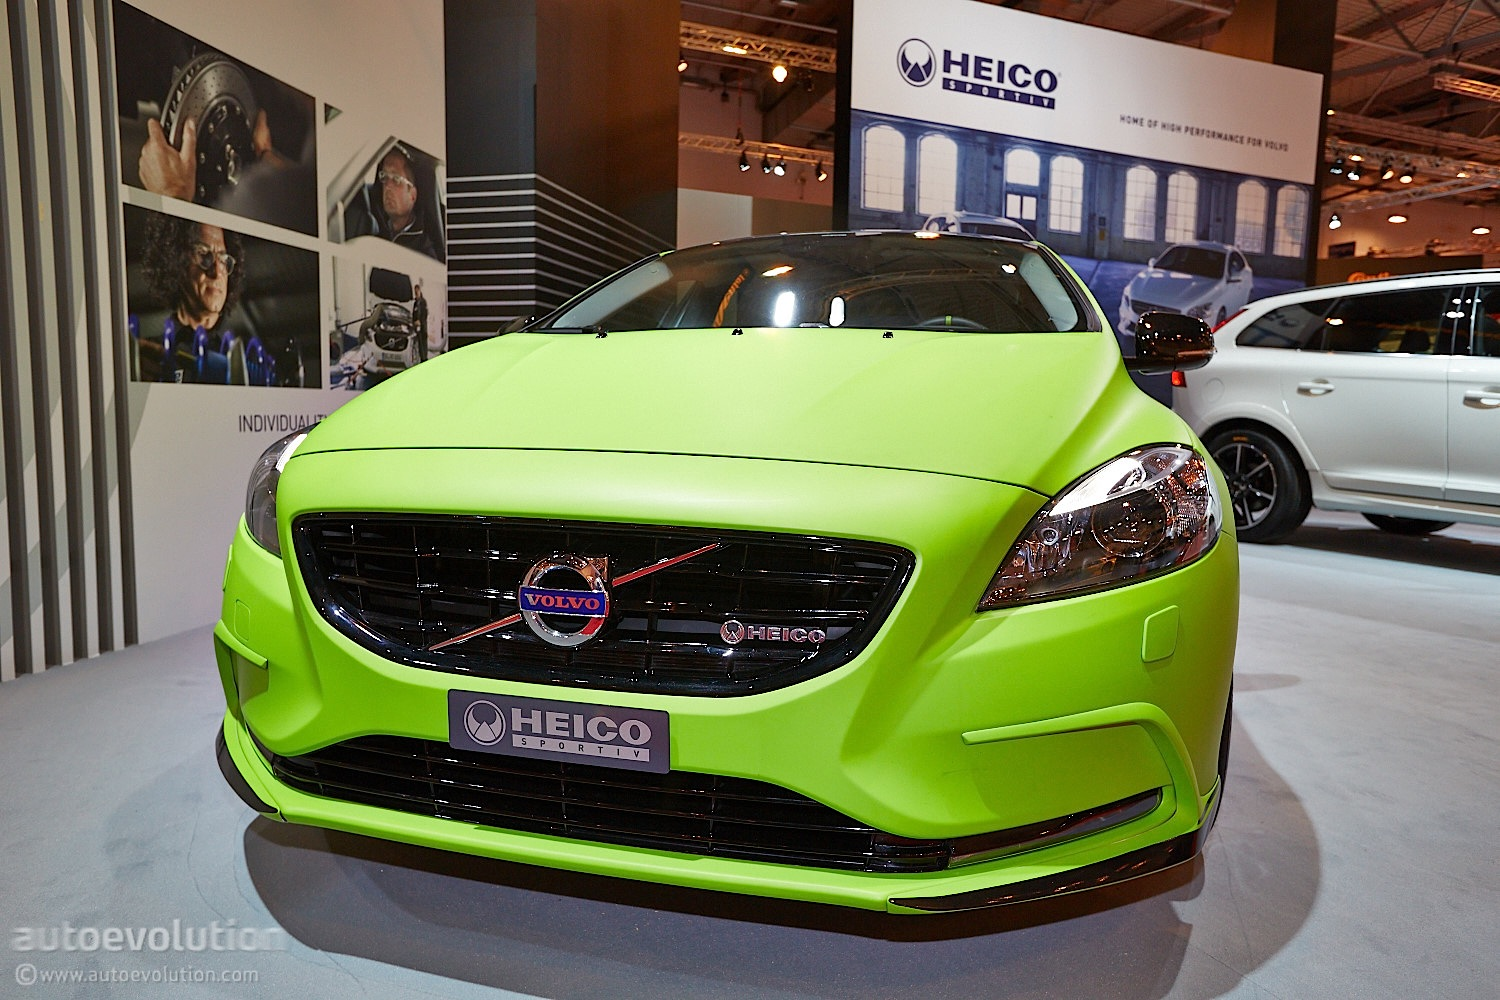 volvo v40 t5 hpc arrives at essen 2013 live photos autoevolution. Black Bedroom Furniture Sets. Home Design Ideas